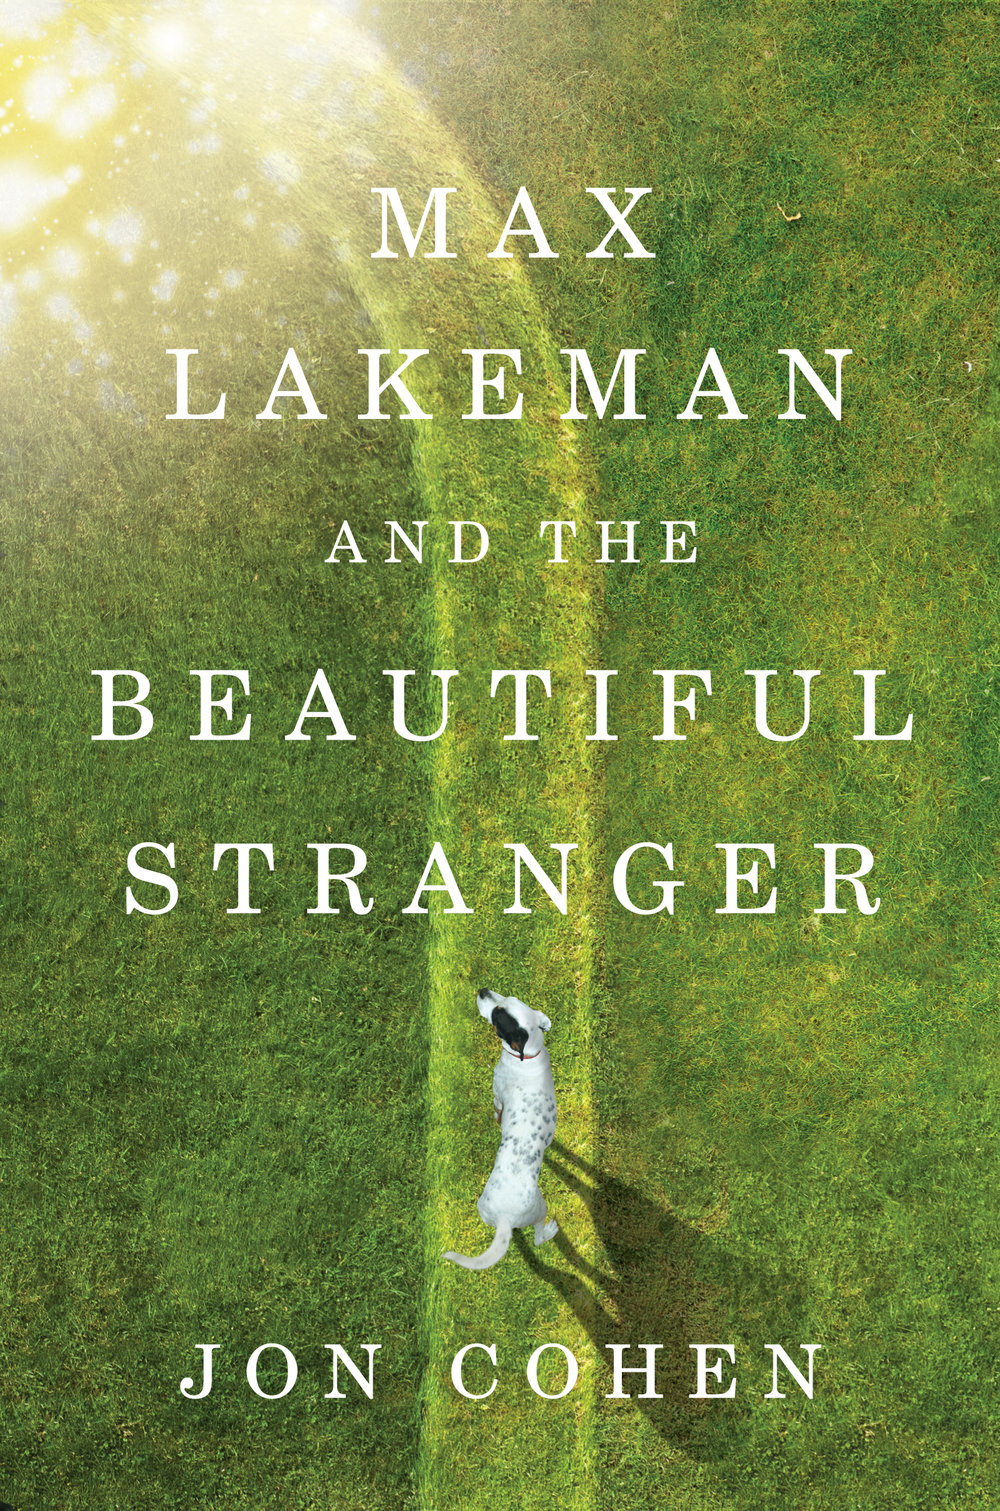 MAX LAKEMAN AND THE BEAUTIFUL STRANGER.jpg